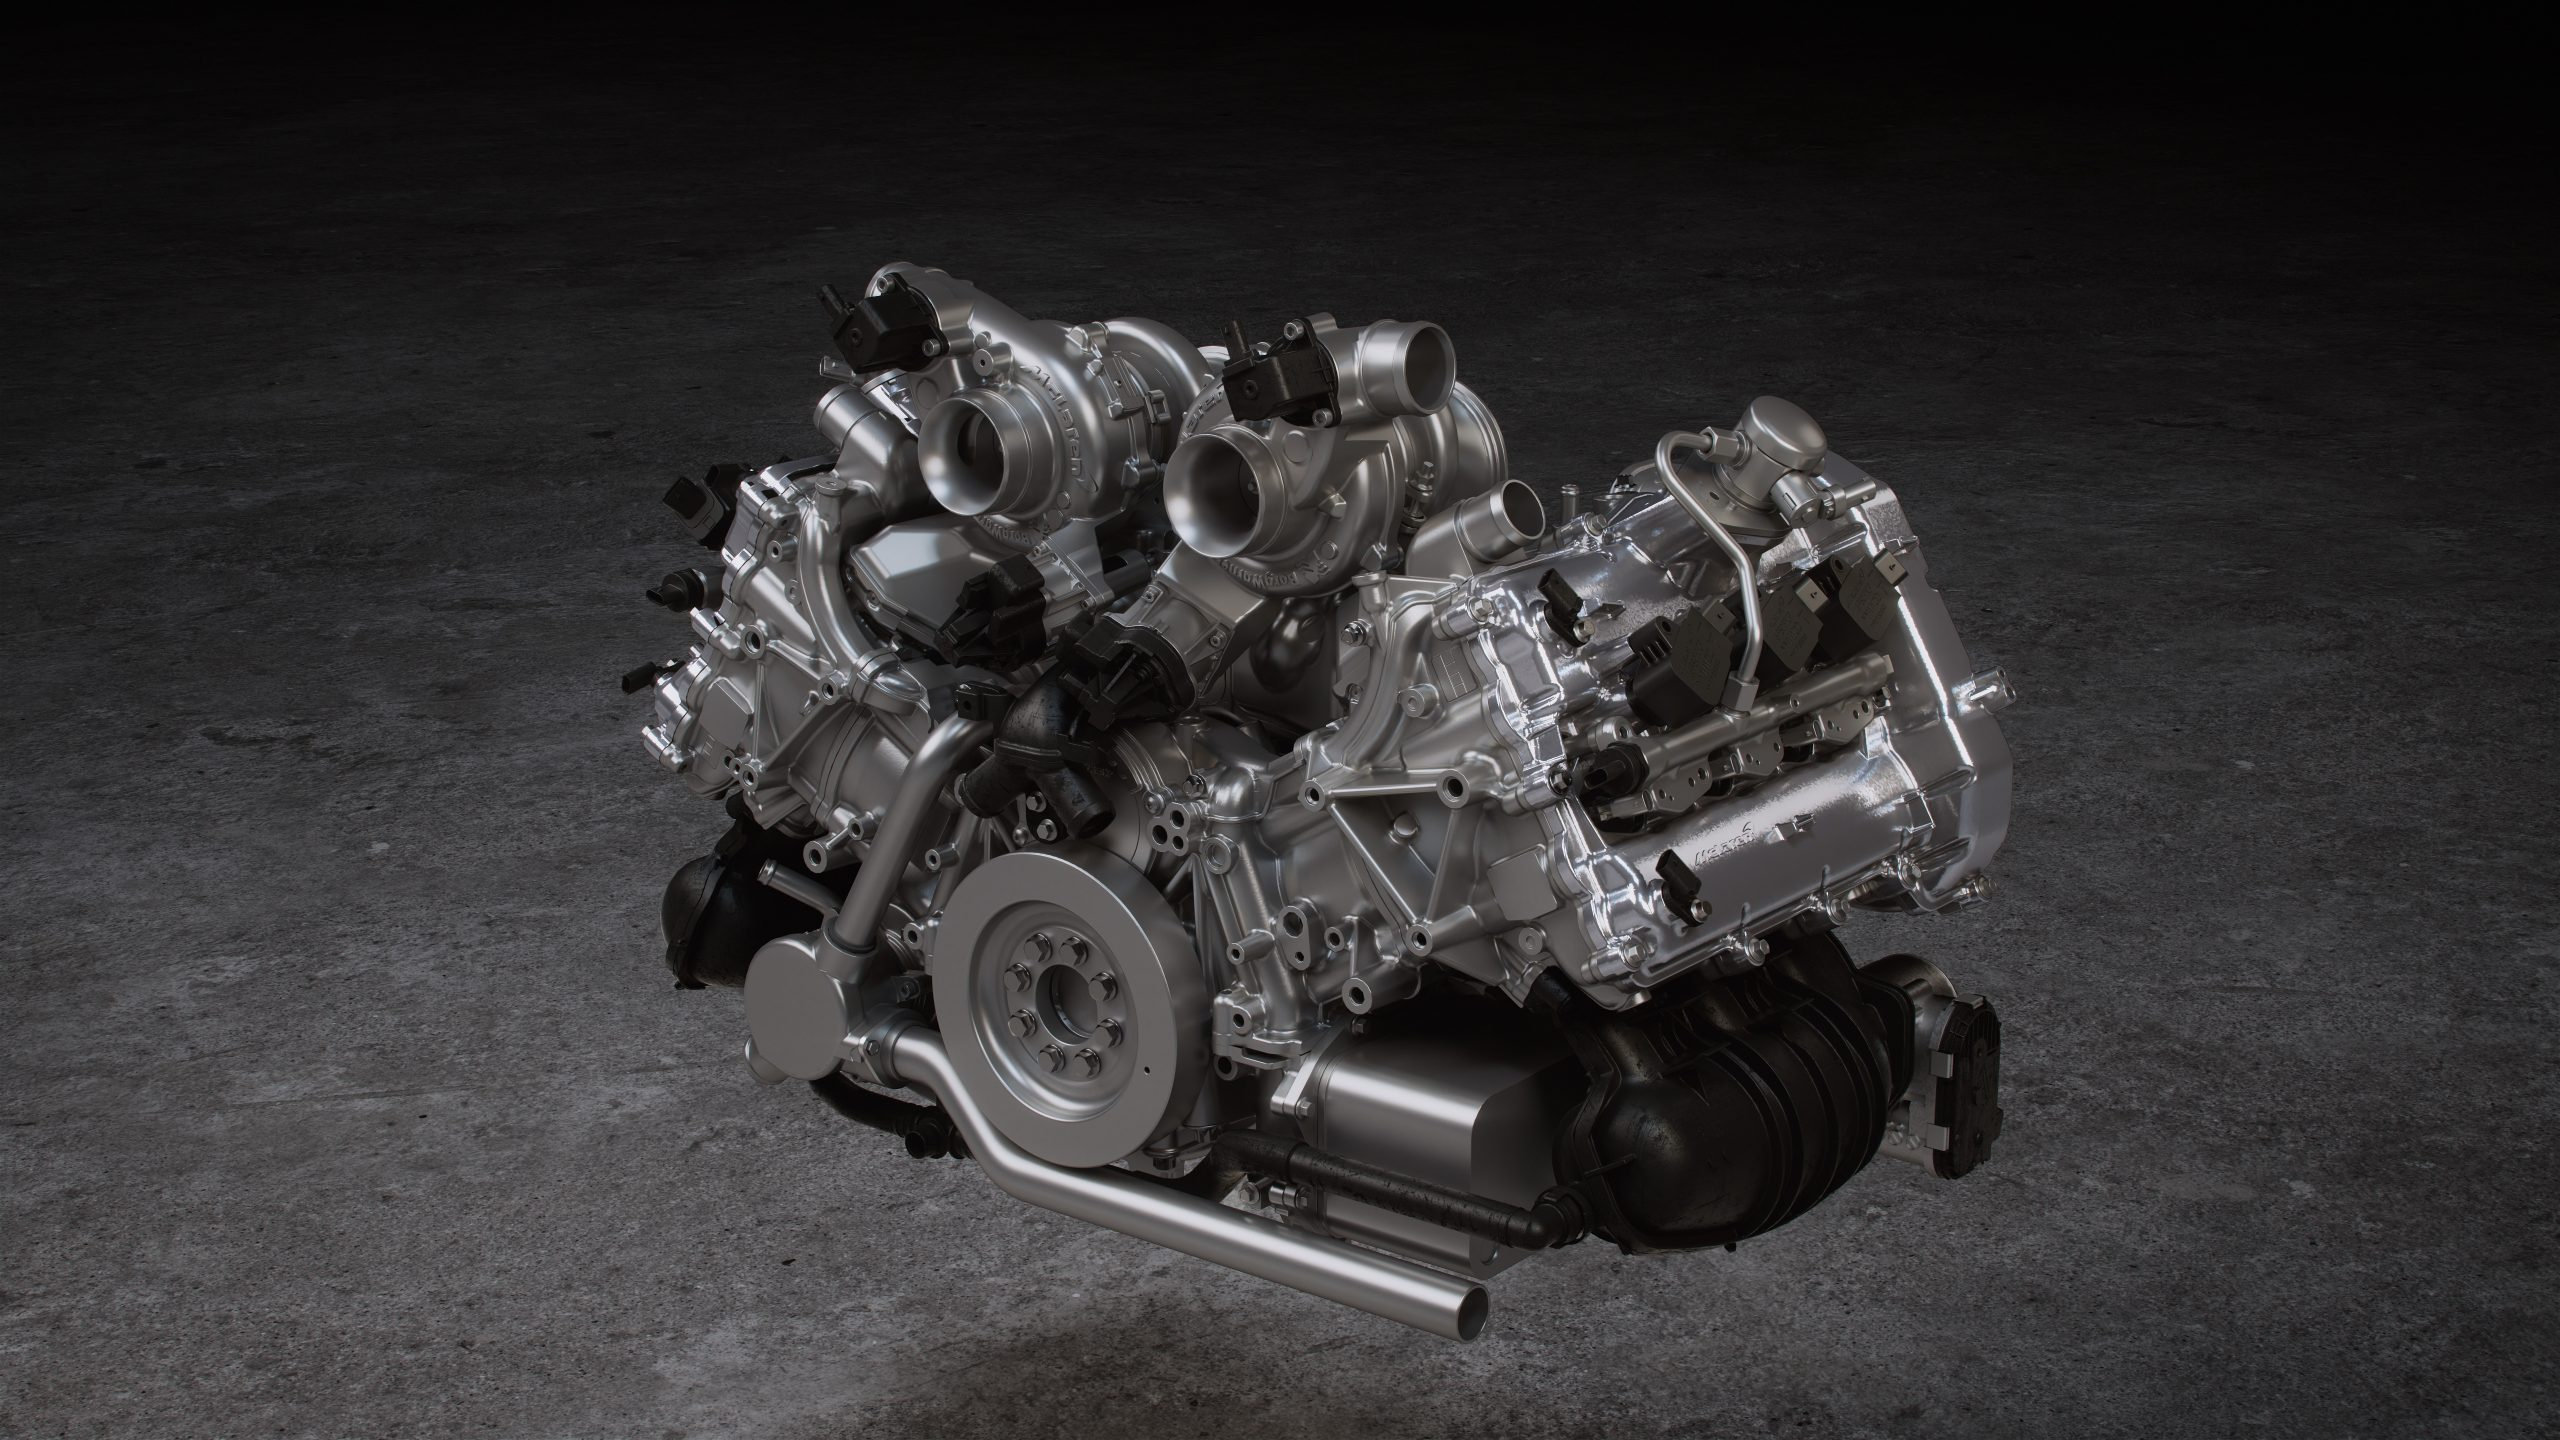 hybrid McLaren Artura V6 engine is produced using 3D printed cores